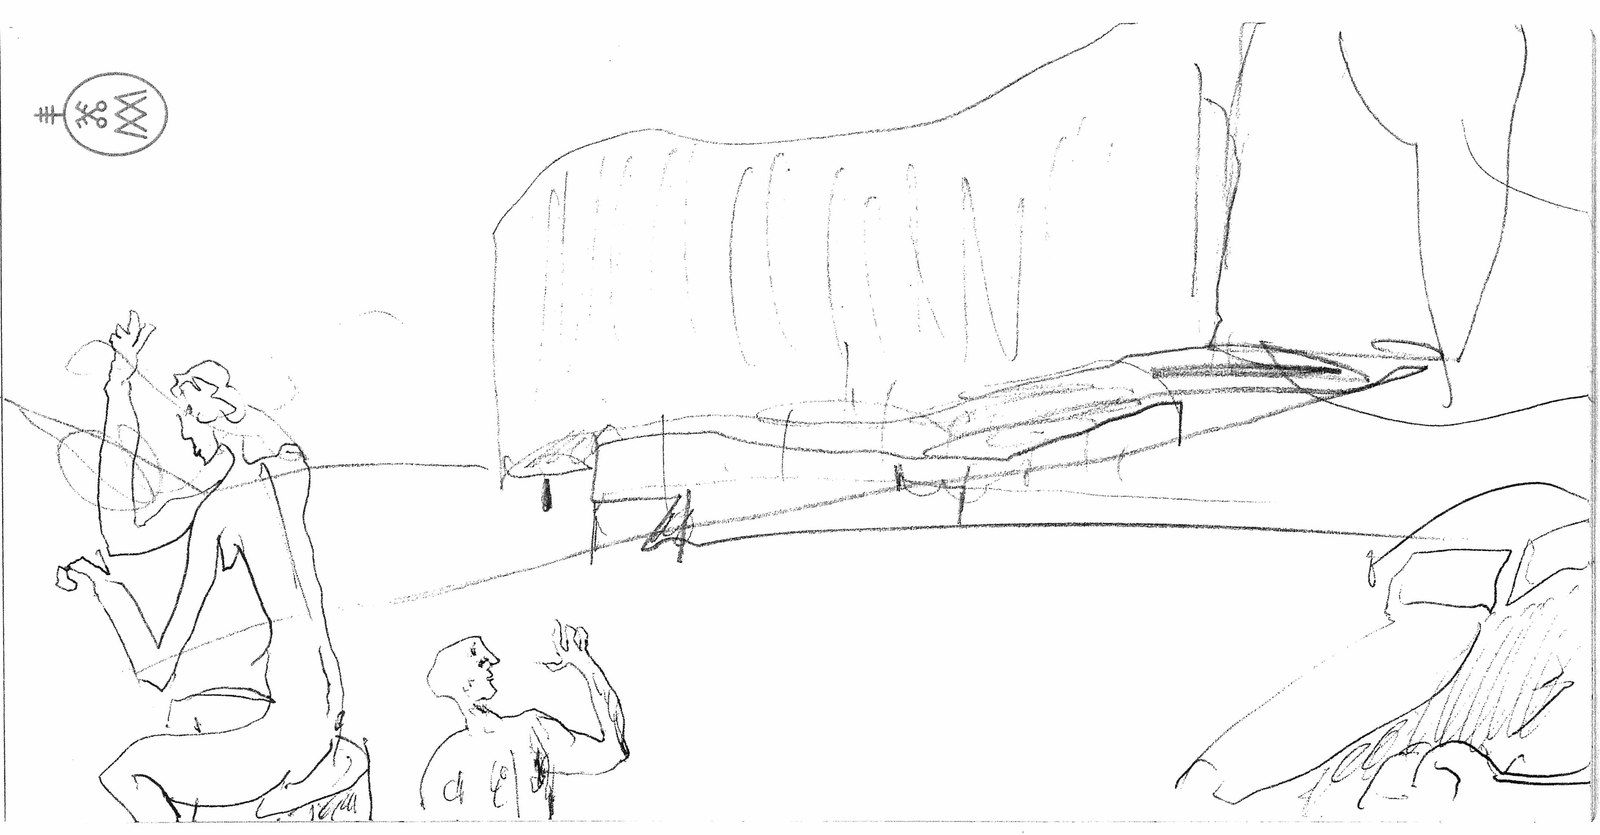 Alvaro Vieira Siza ( the drawing of the architect )